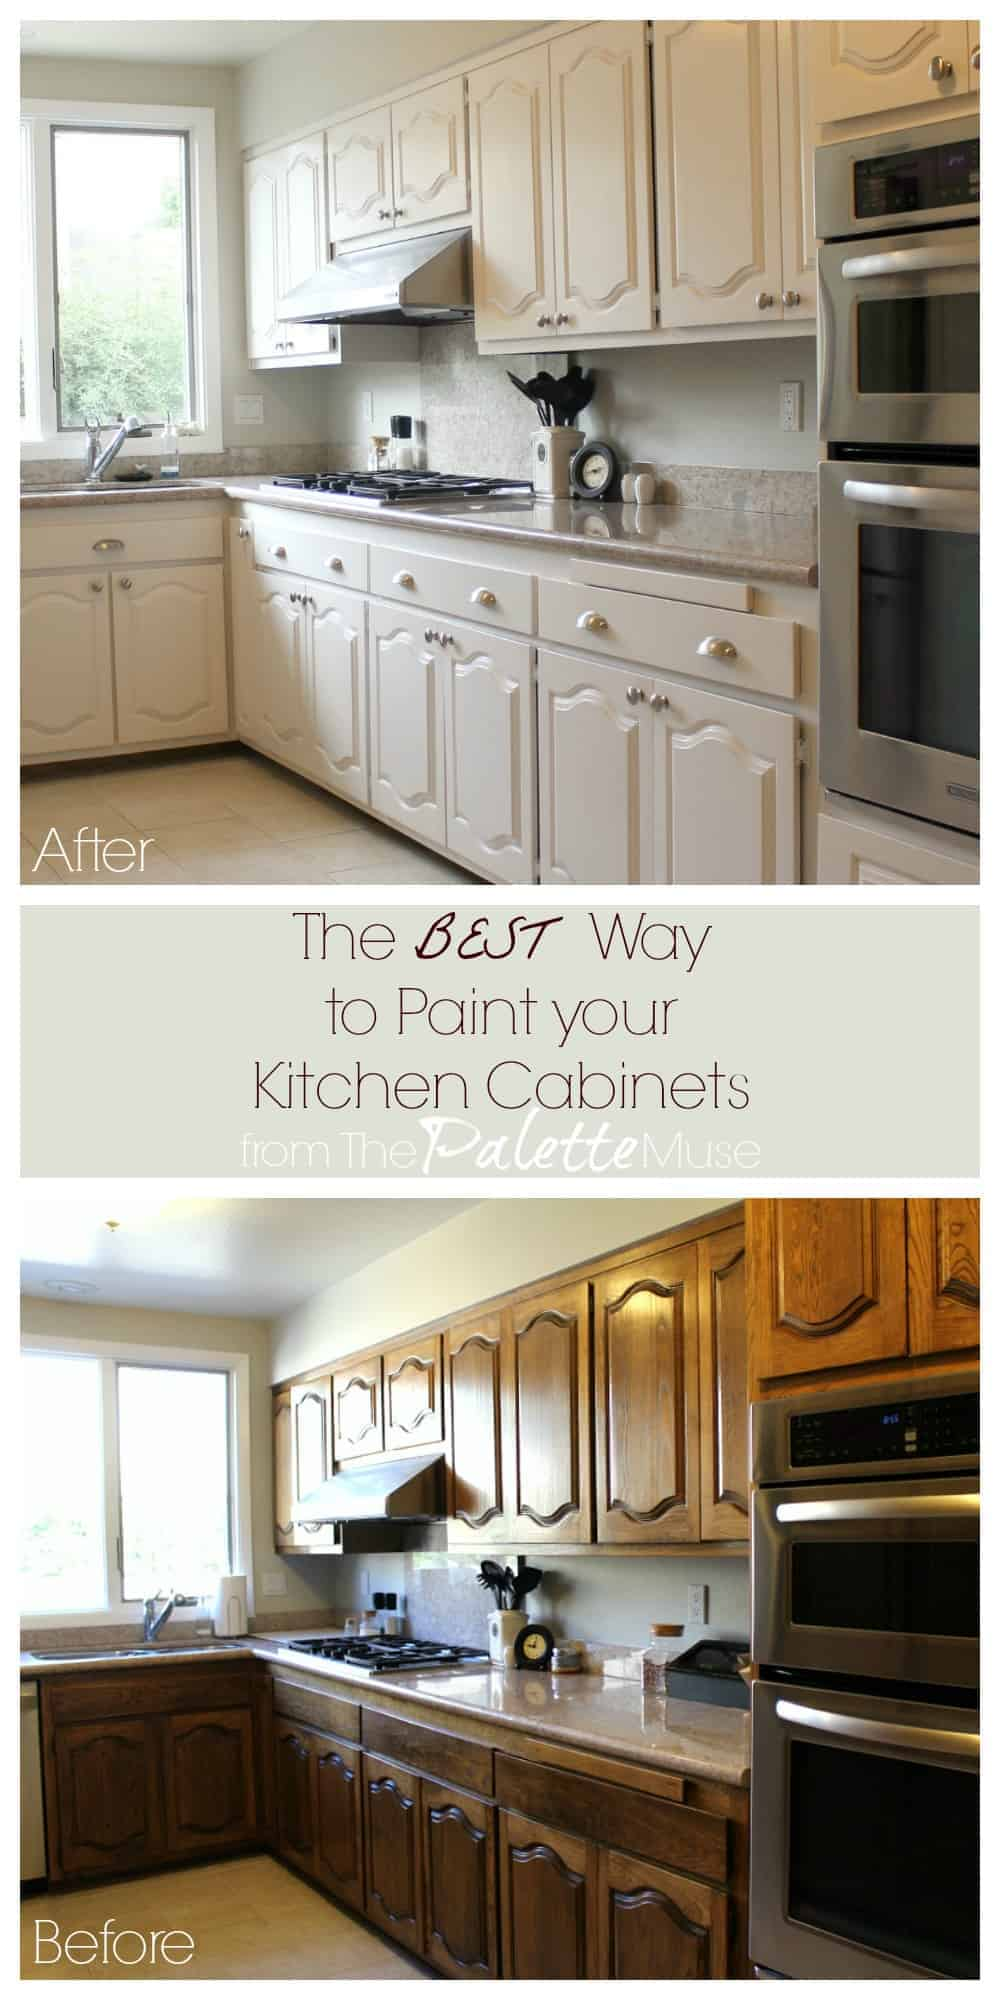 The best way to paint kitchen cabinets the palette muse for Best way to clean painted kitchen cabinets